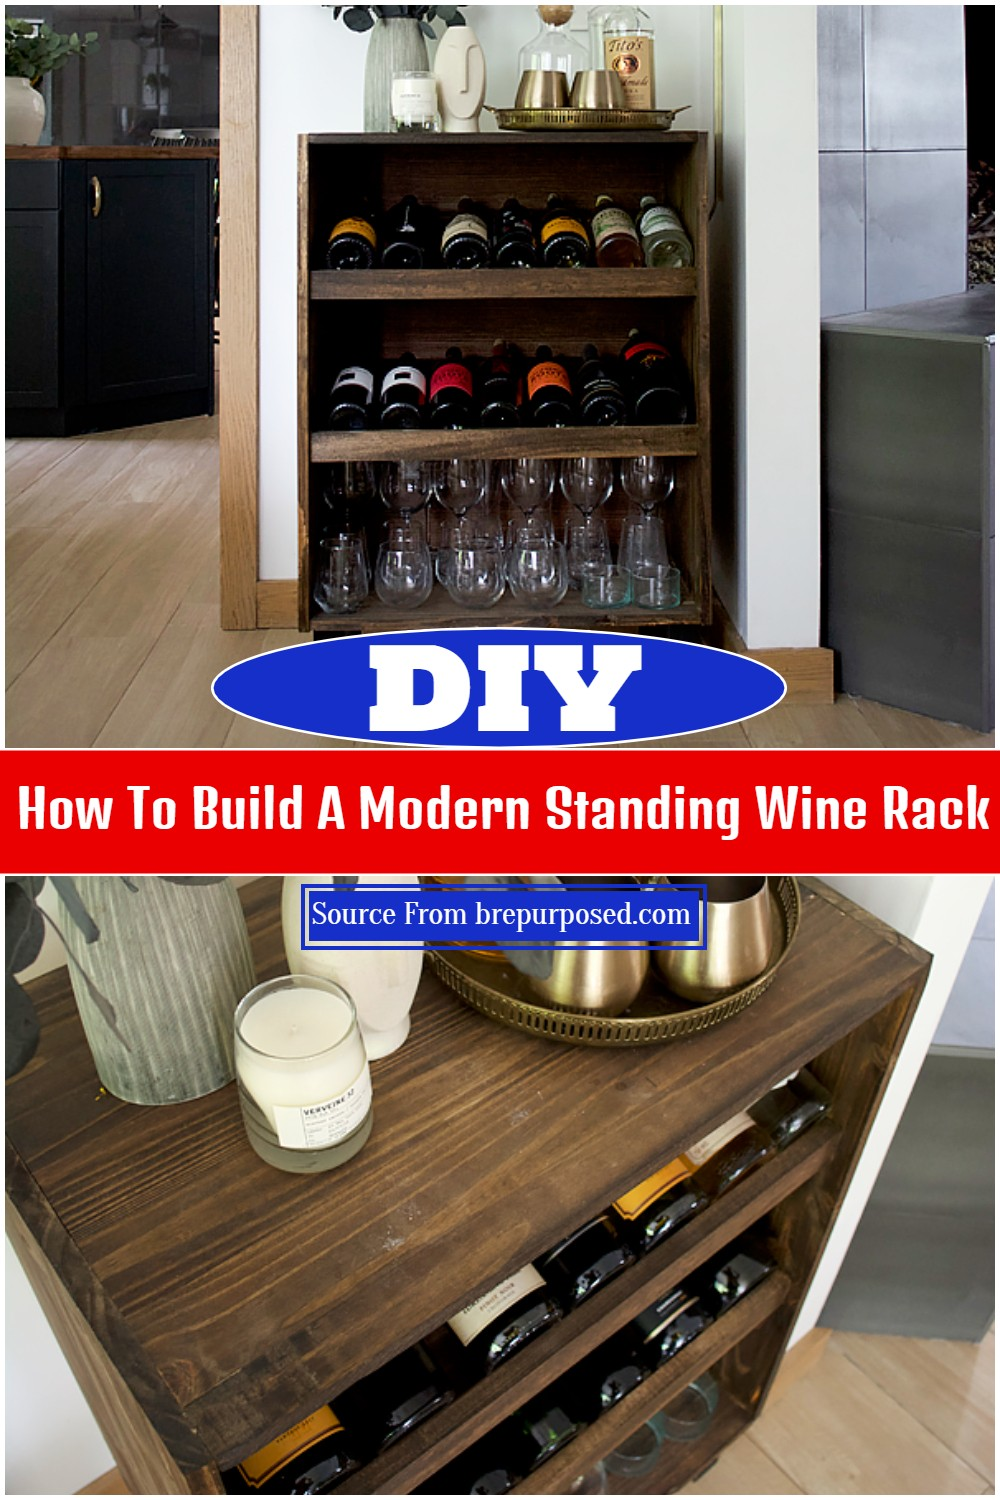 DIY How To Build A Modern Standing Wine Rack